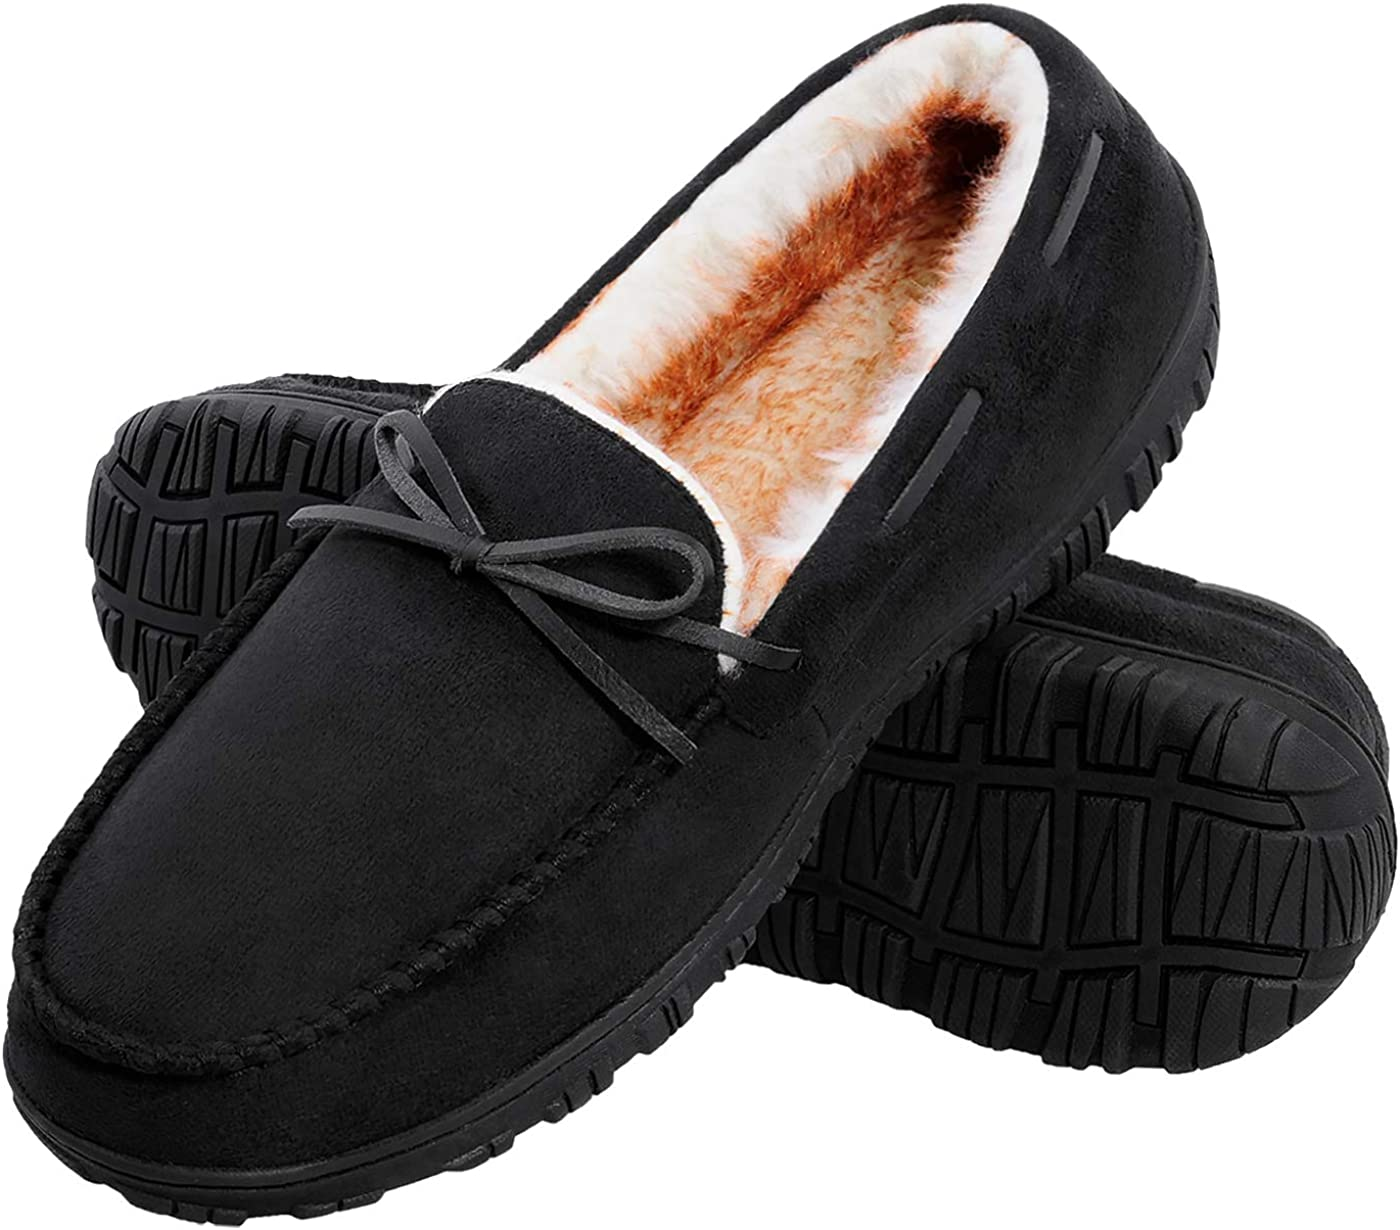 Harebell Men's Moccasin Slippers Plush Memory Foam House Slippers Indoor Outdoor Non-Skid Home Shoes